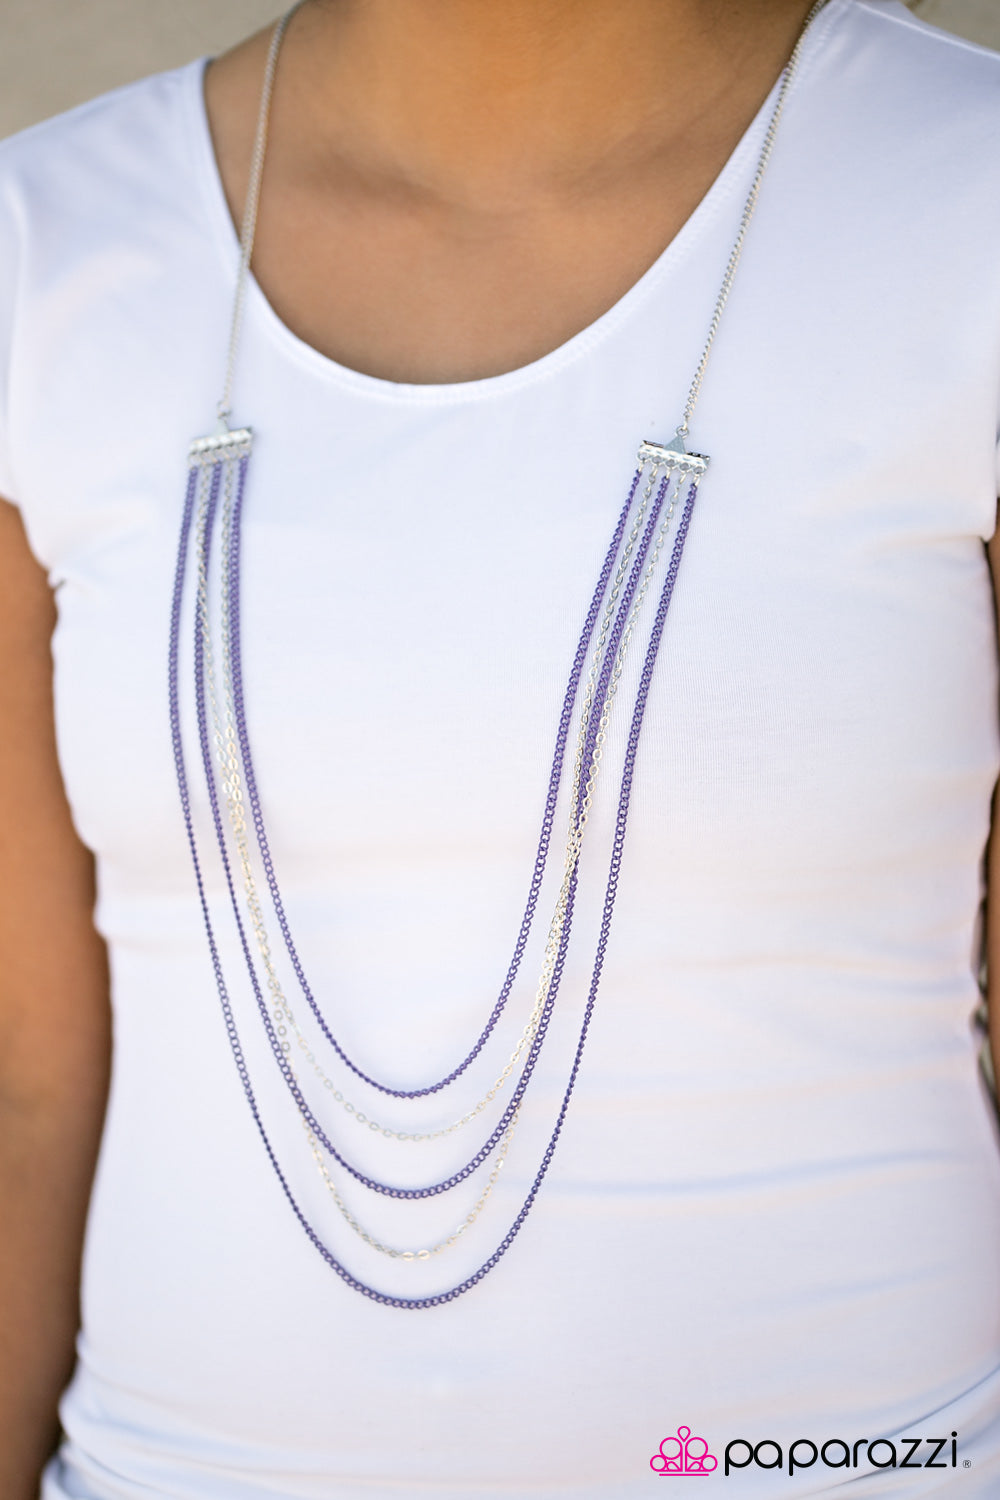 The Rebel In Me - Purple - Paparazzi necklace